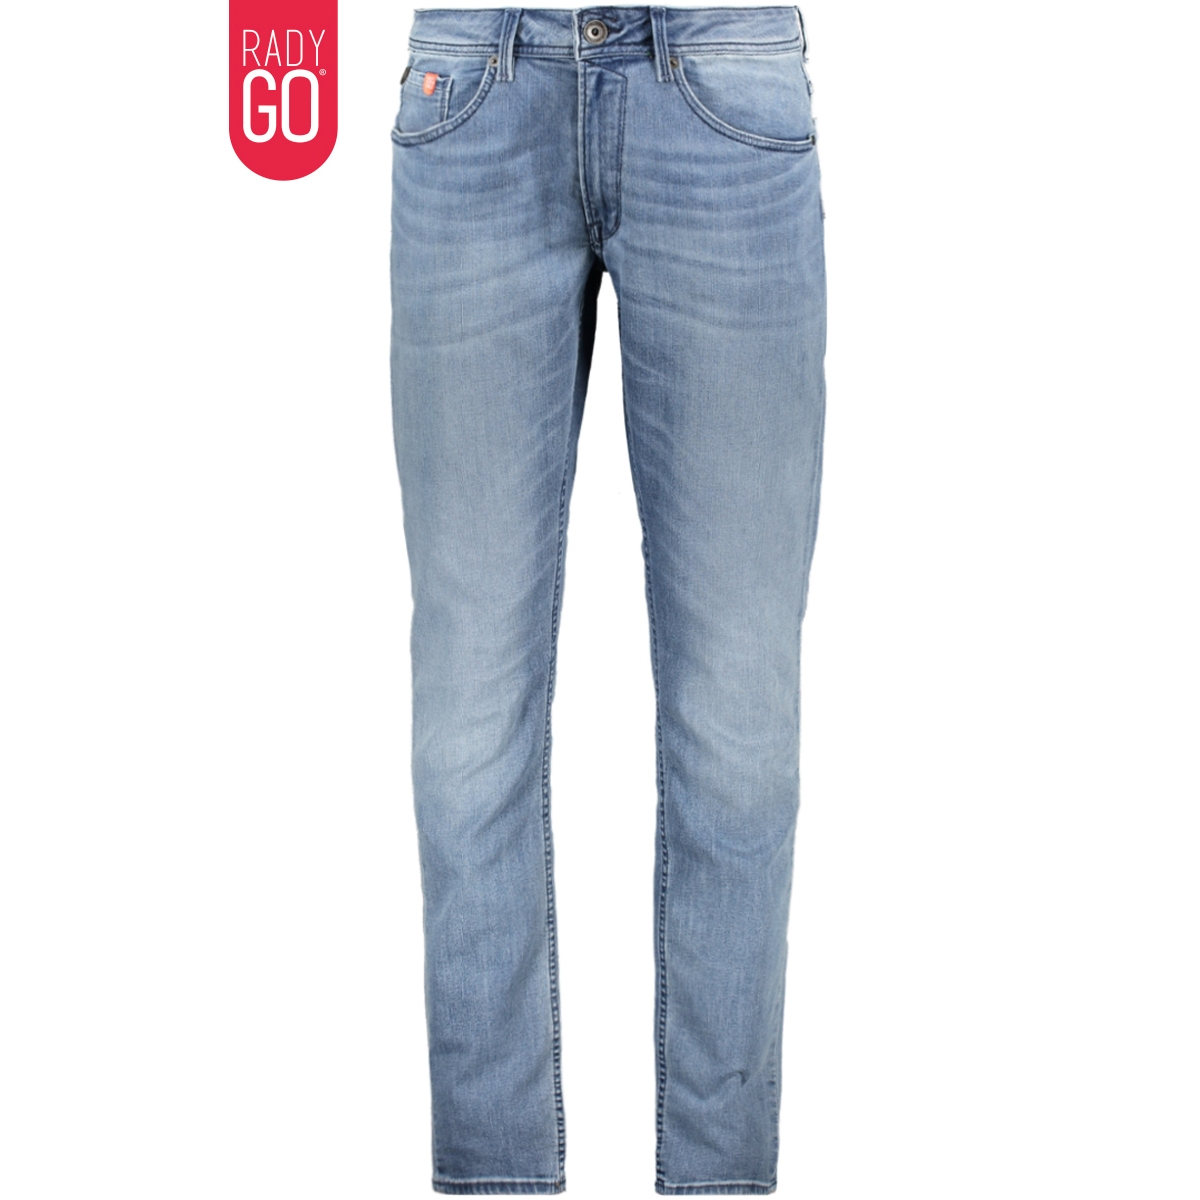 613 russo tapered garcia jeans 6124